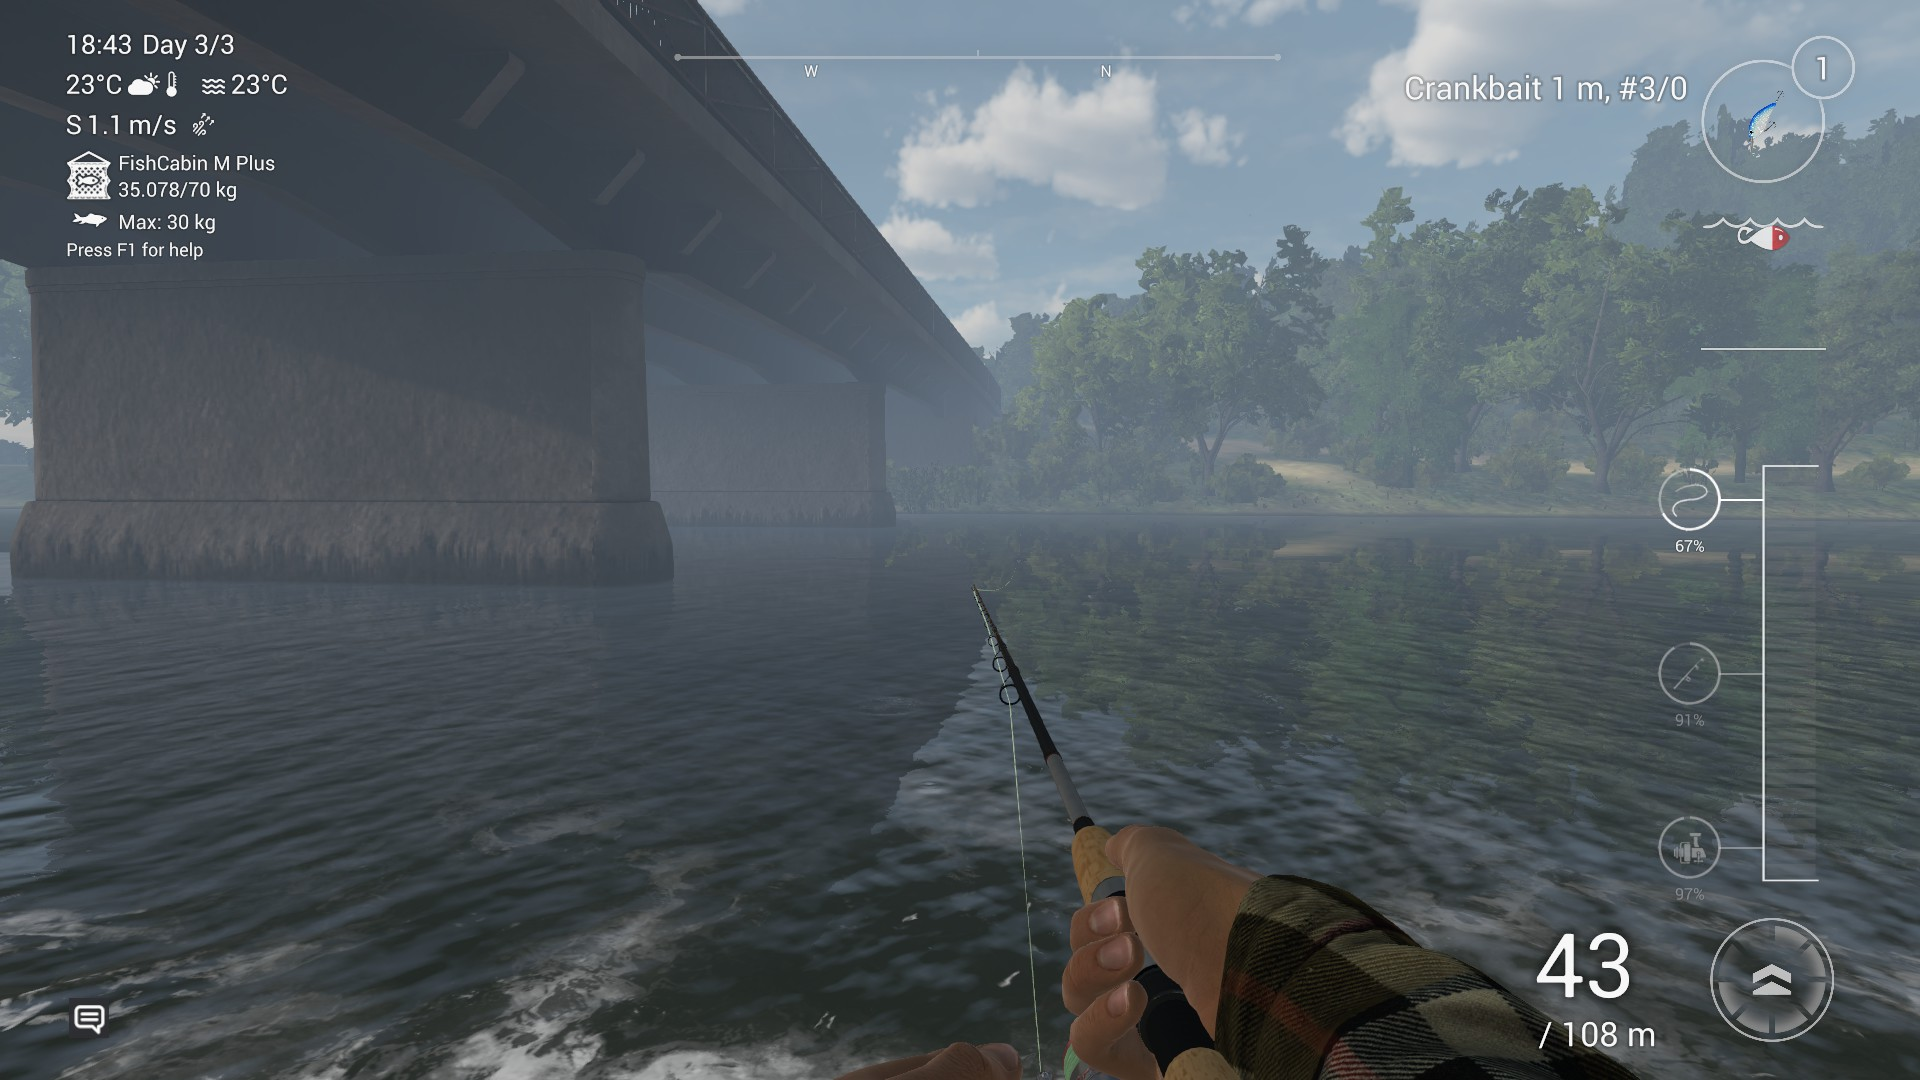 Steam Community :: Guide :: Fishing Planet: The Tiber River [EN]